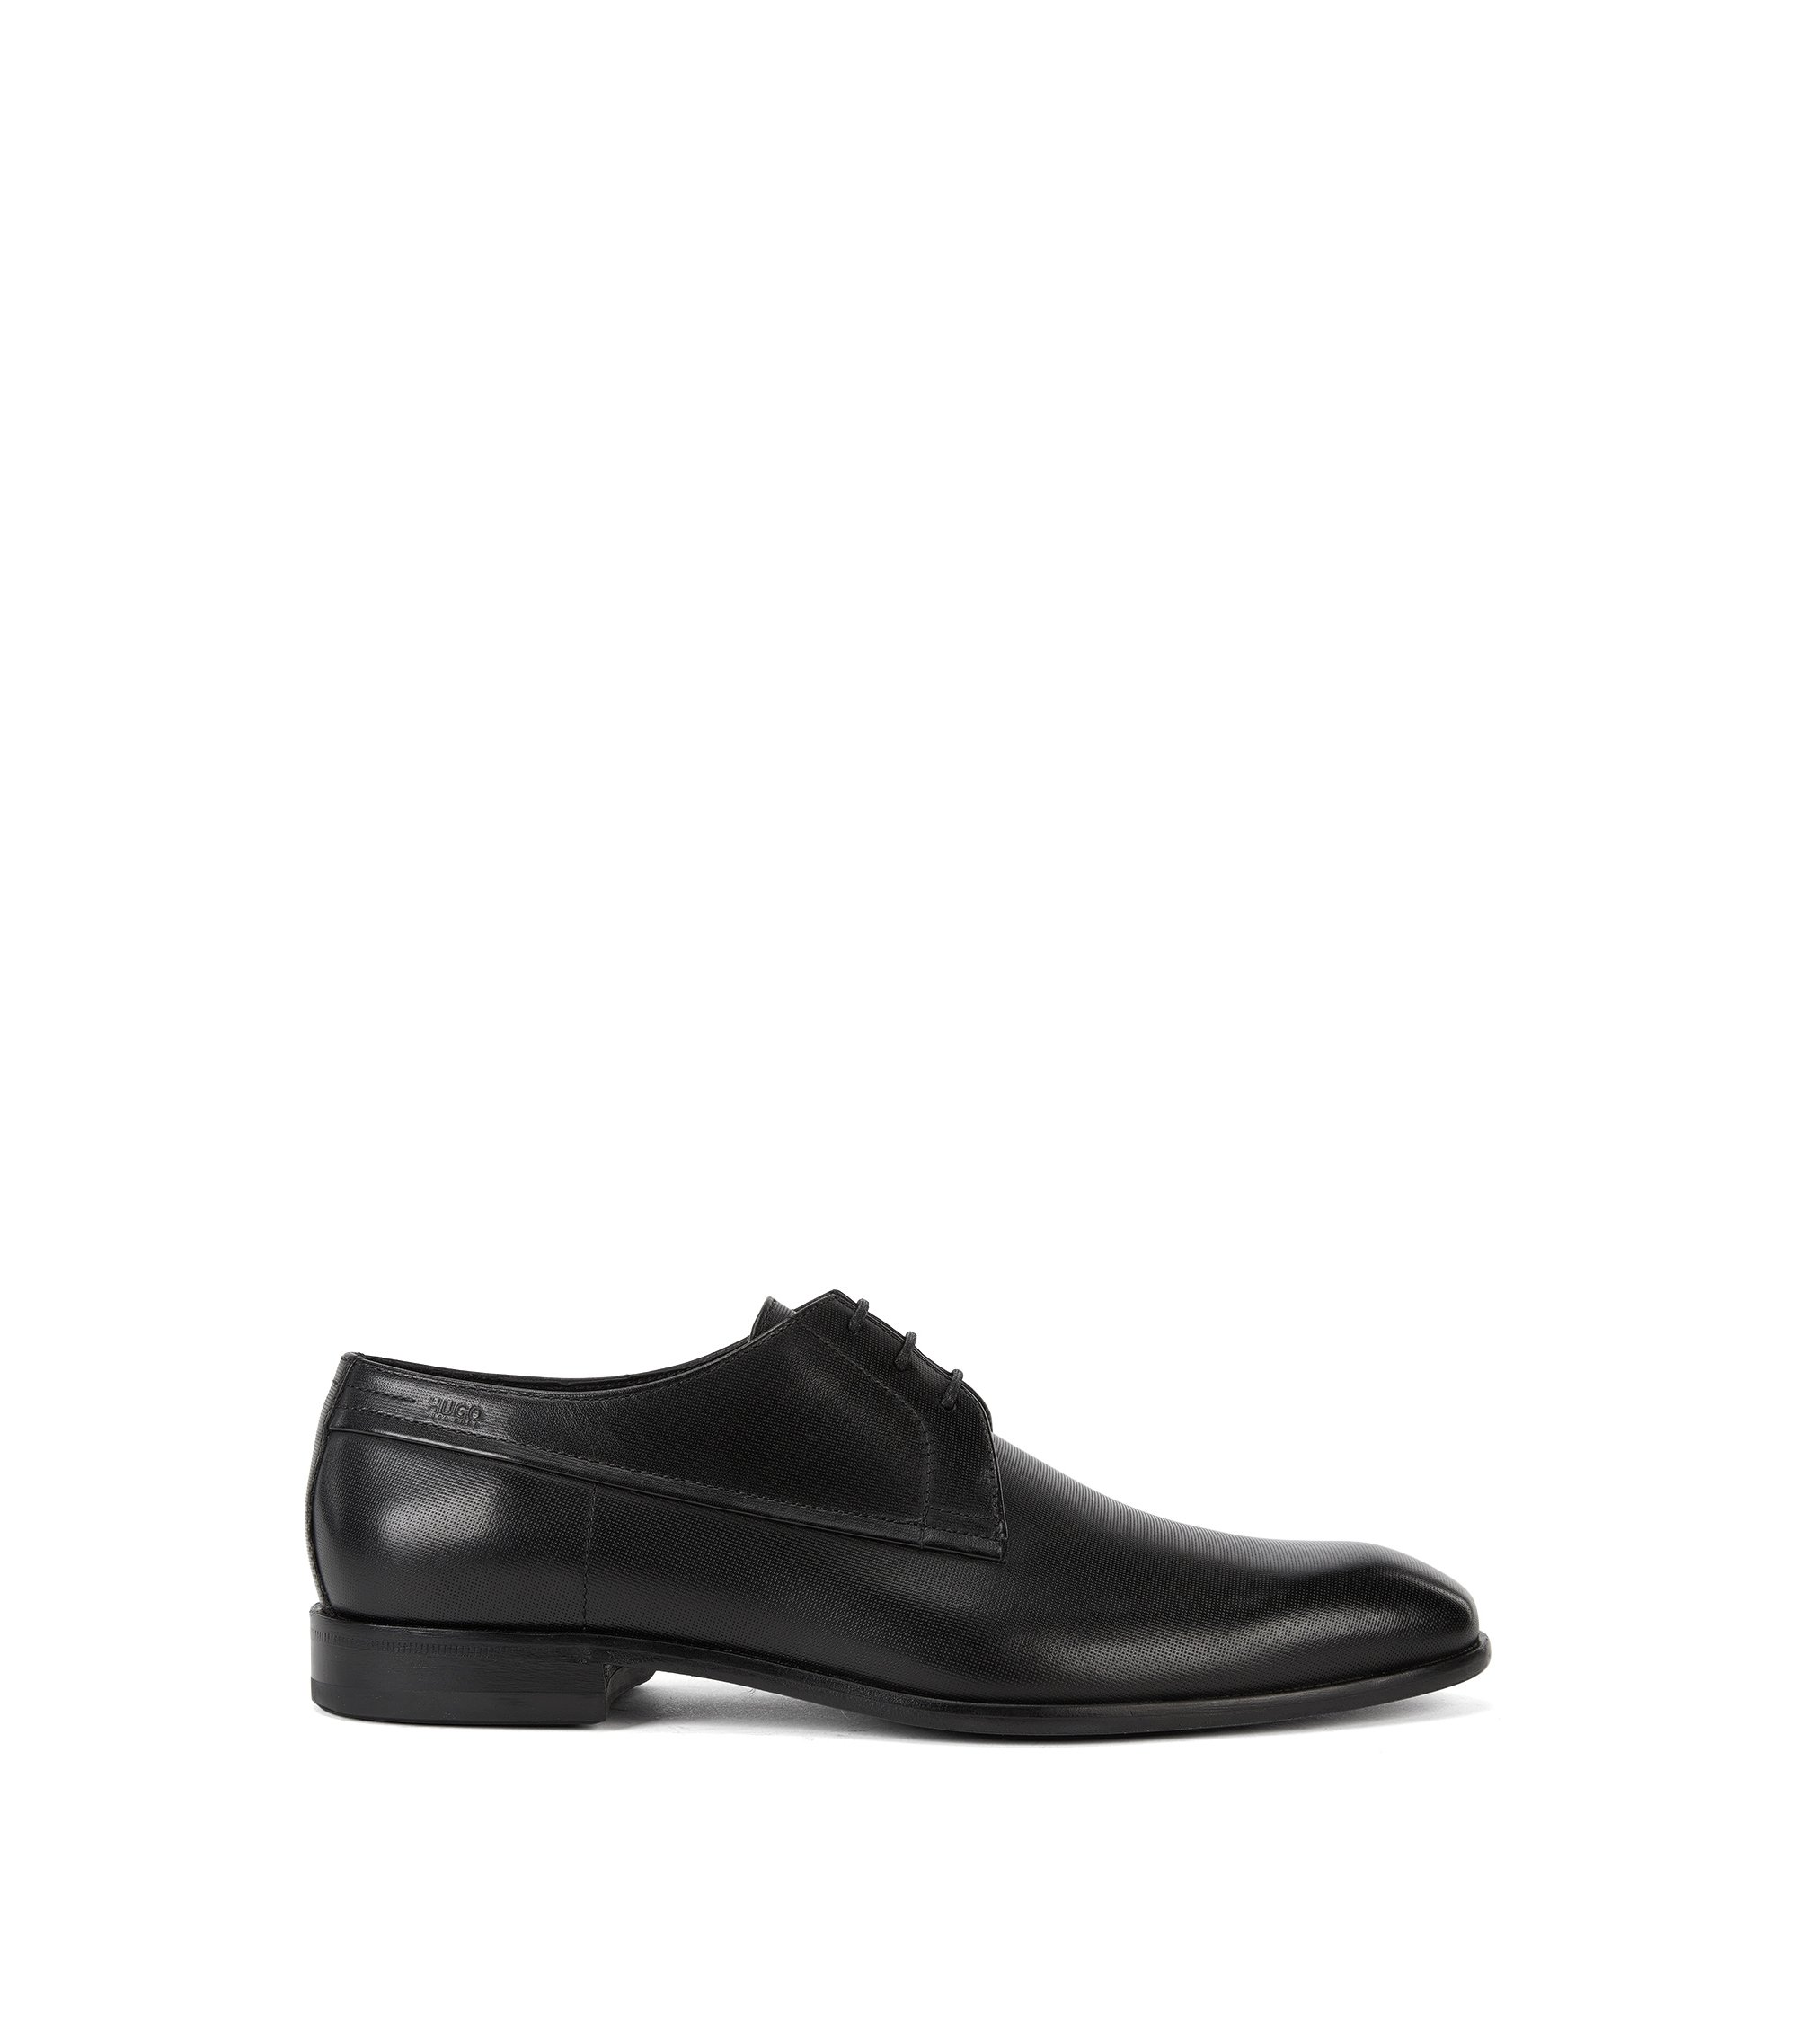 Derby shoes in embossed calf leather by HUGO Man, Black